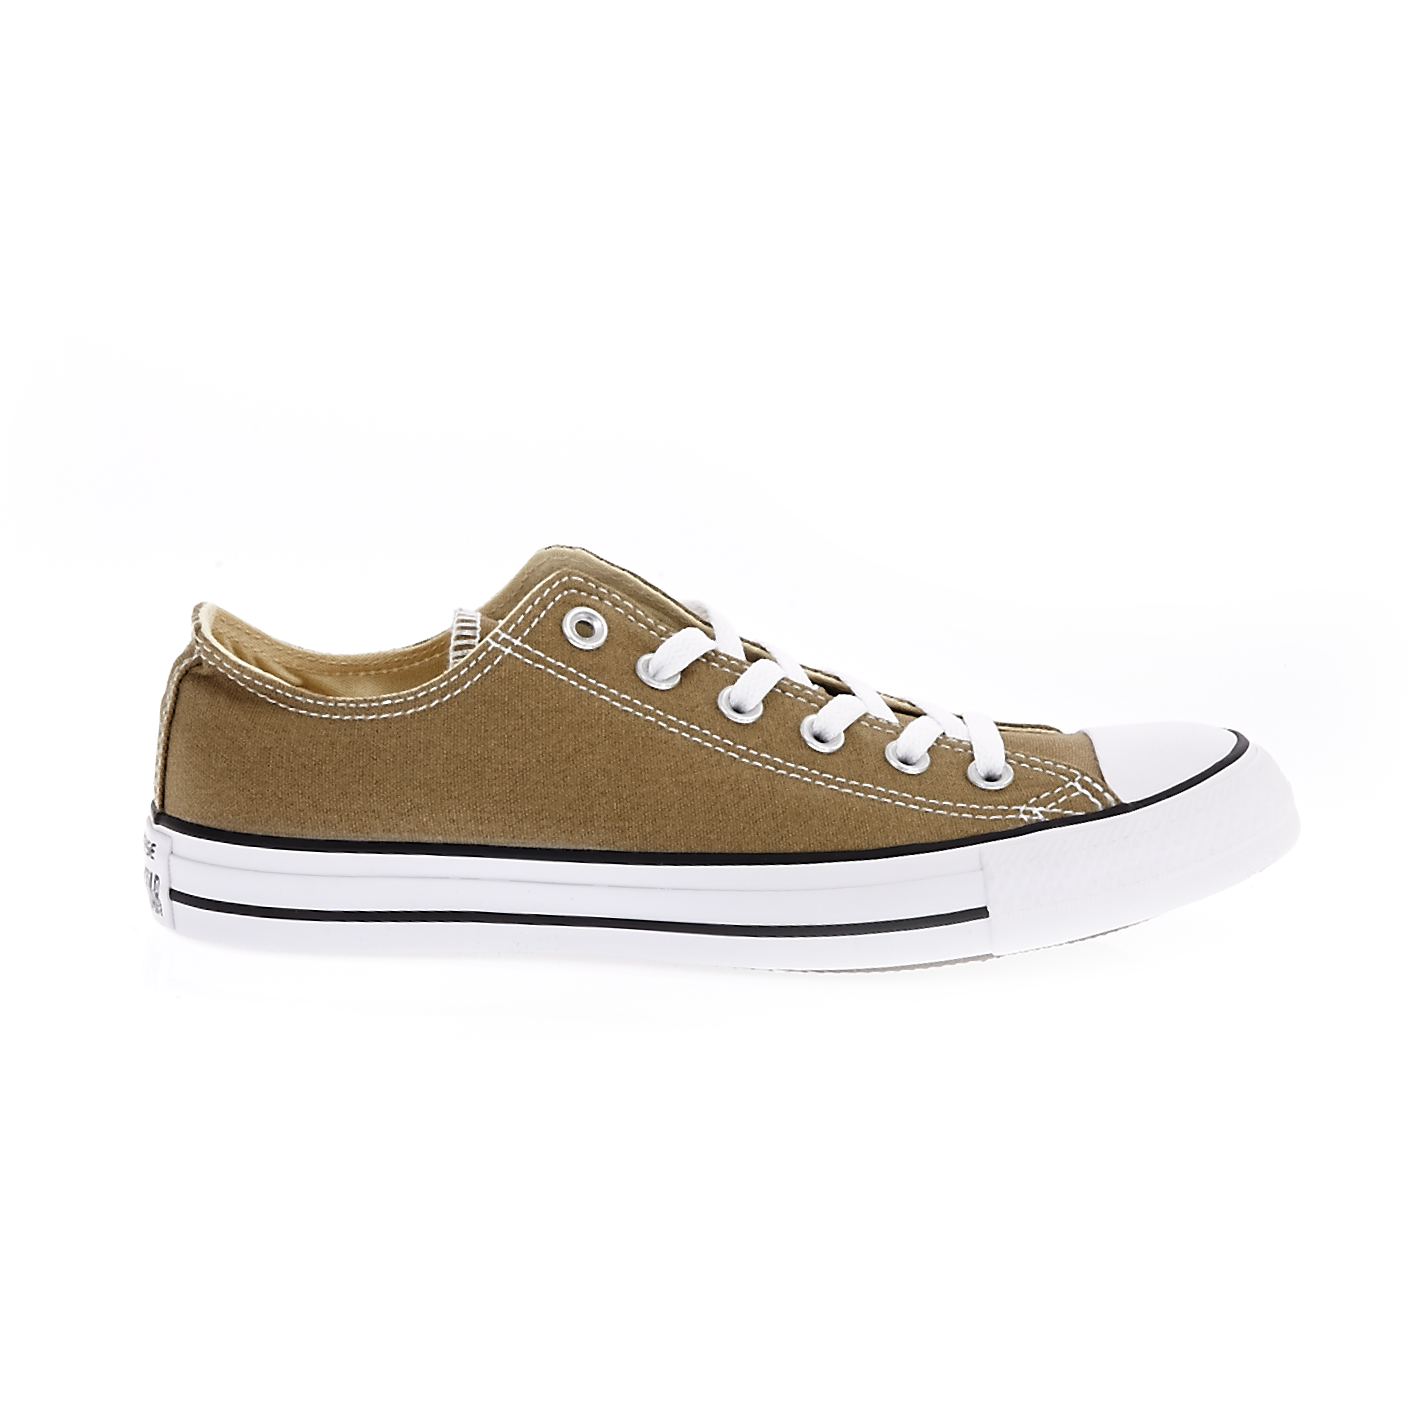 CONVERSE - Unisex παπούτσια Chuck Taylor All Star Ox καφέ ανδρικά παπούτσια sneakers